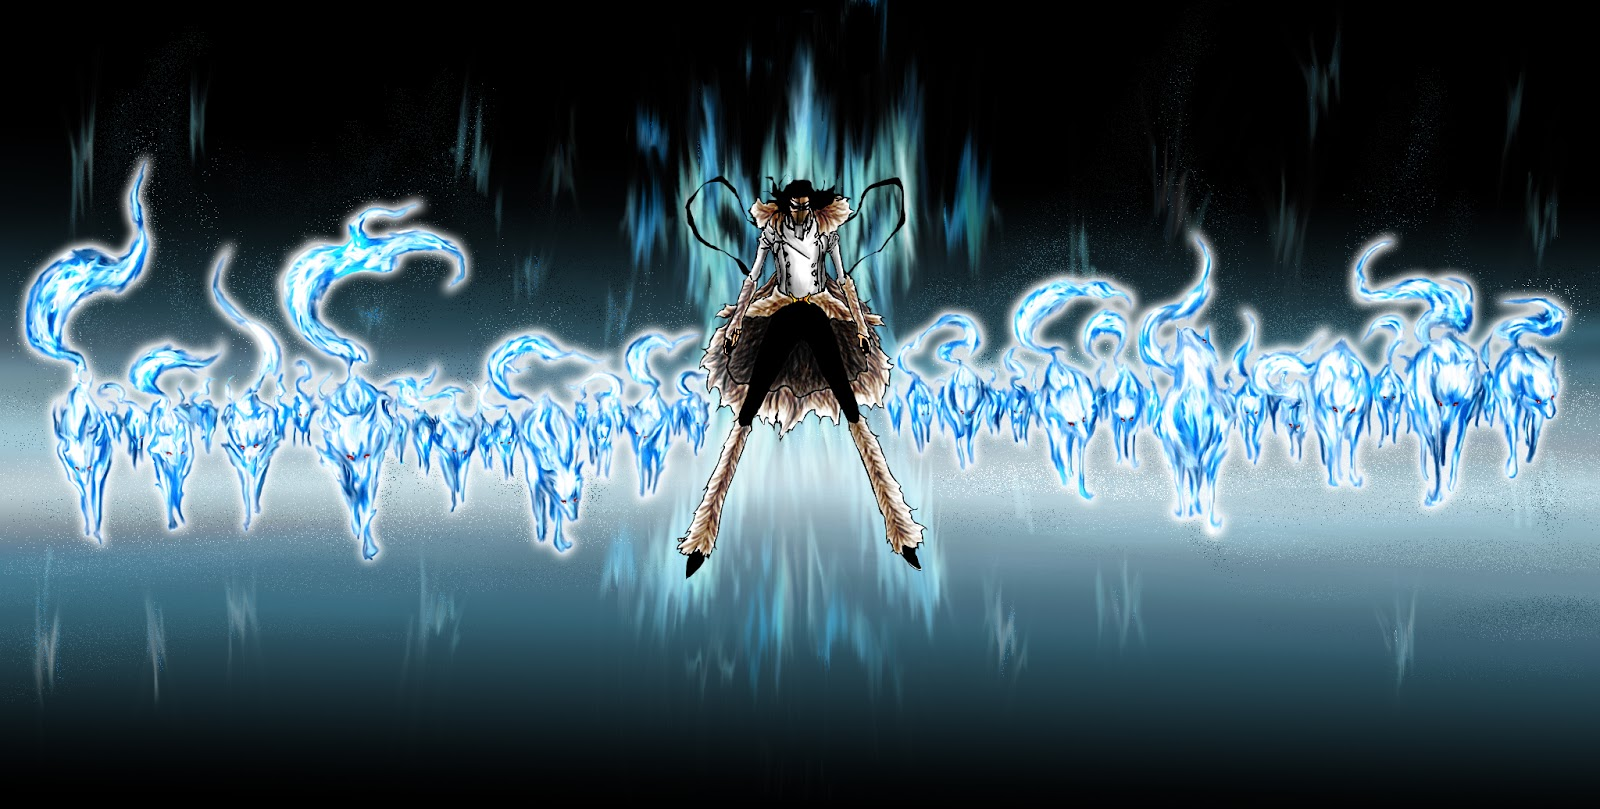 Coyote starrk 10 wallpapers your daily anime wallpaper - Fanart anime wallpaper ...